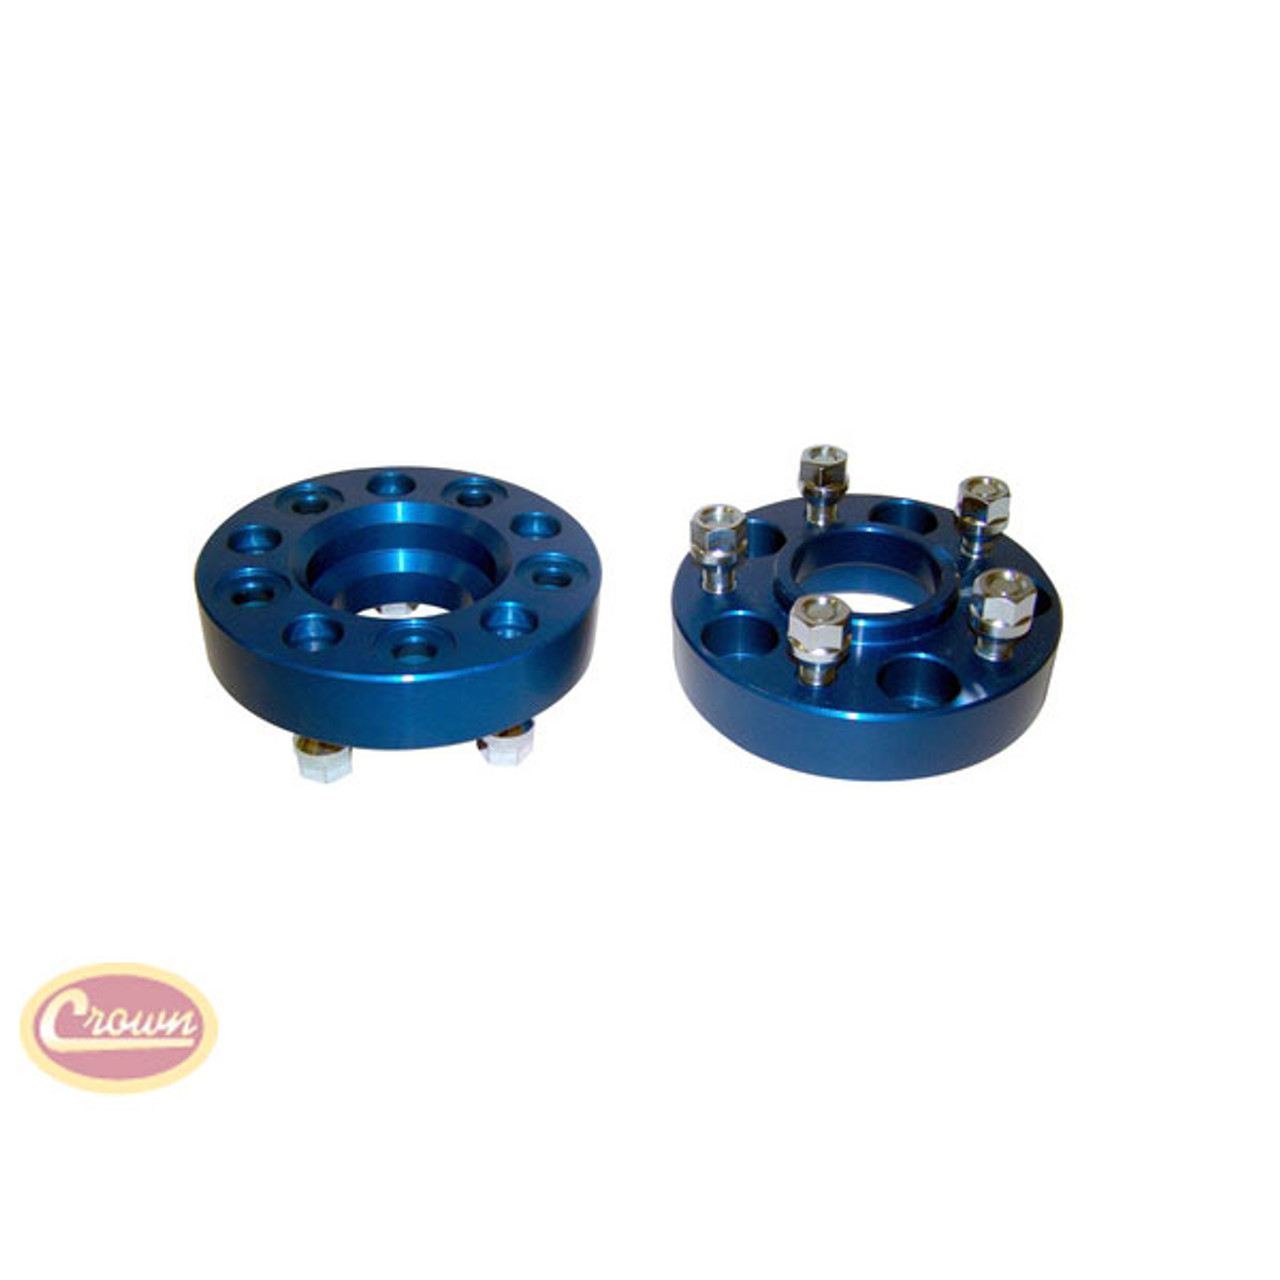 """Crown Automotive Wheel Spacers 5 on 5.5 Bolt Pattern 1.5"""" Offset Pair 